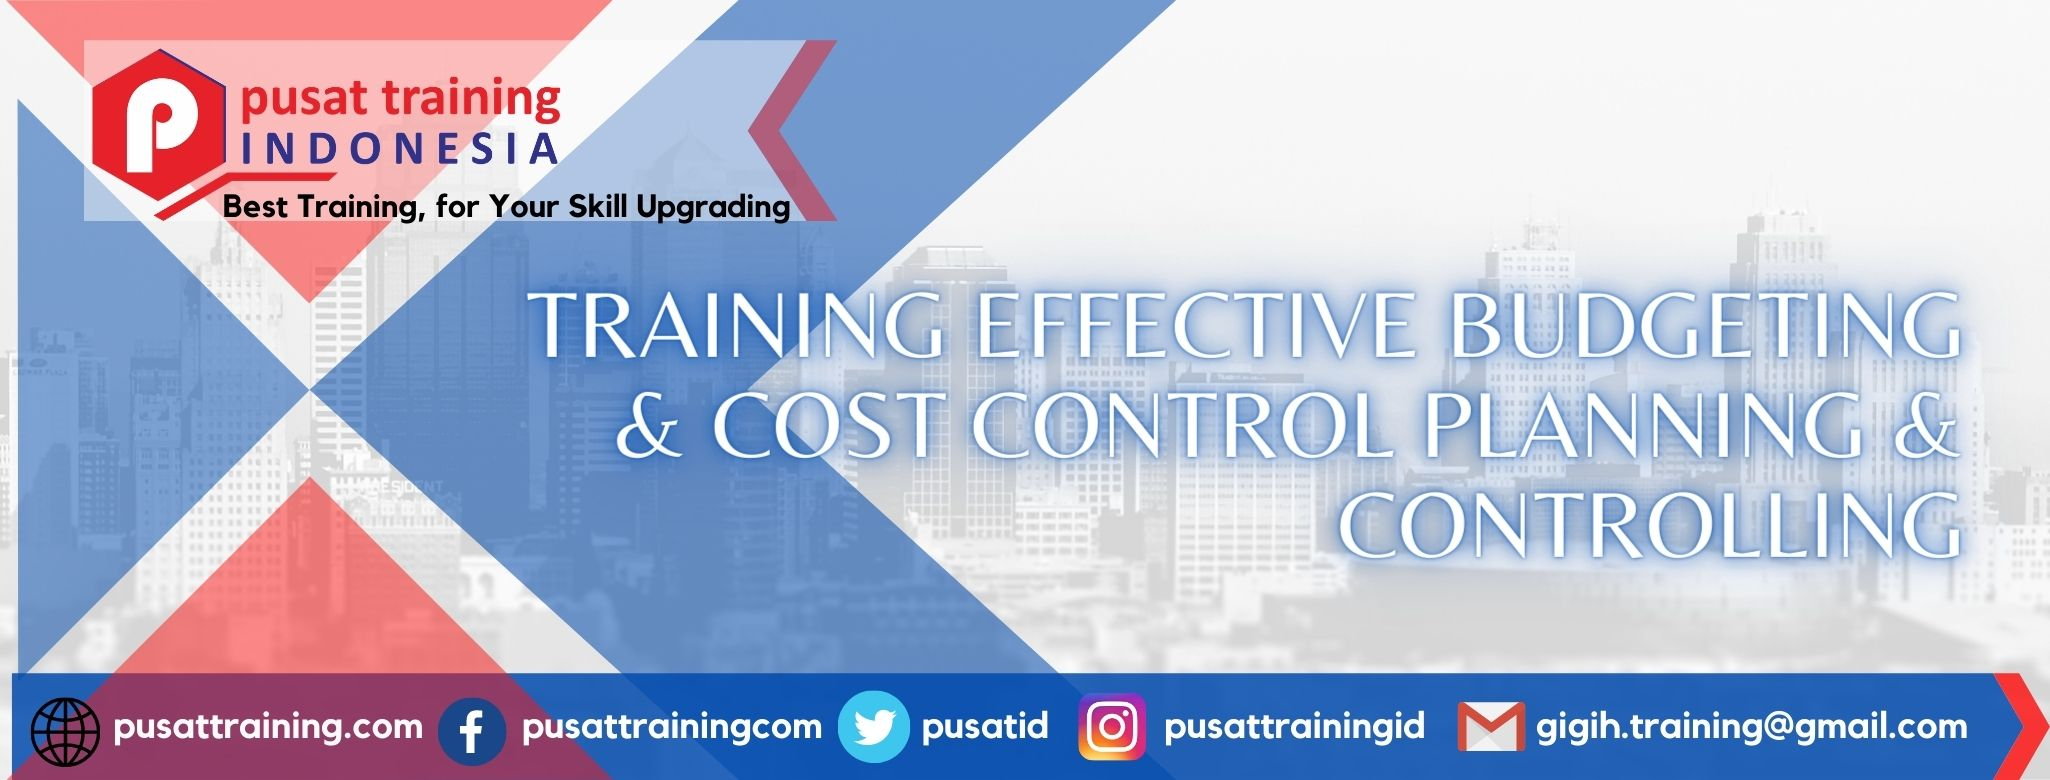 TRAINING EFFECTIVE BUDGETING & COST CONTROL PLANNING & CONTROLLING